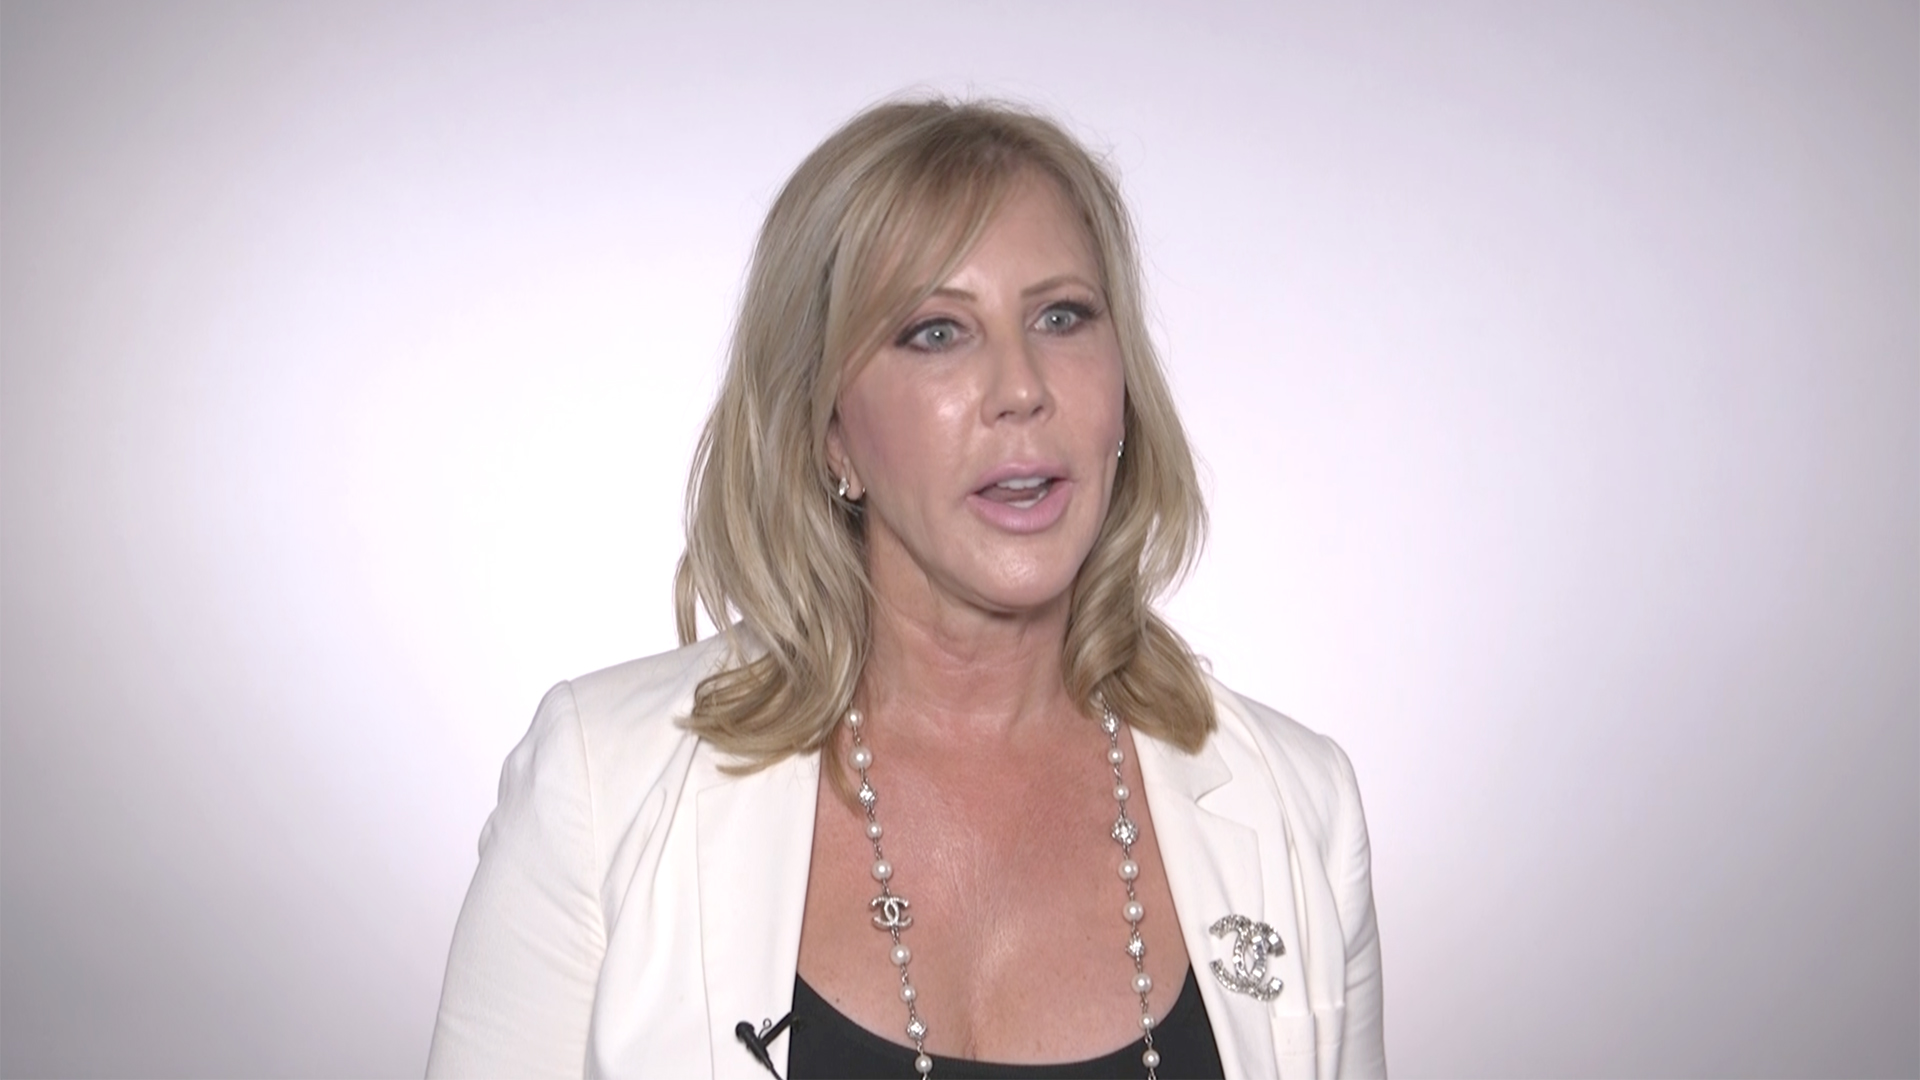 Watch What Does Vicki Gunvalson's Boyfriend Steve Lodge Think of RHOC? |  The Real Housewives of Orange County Videos